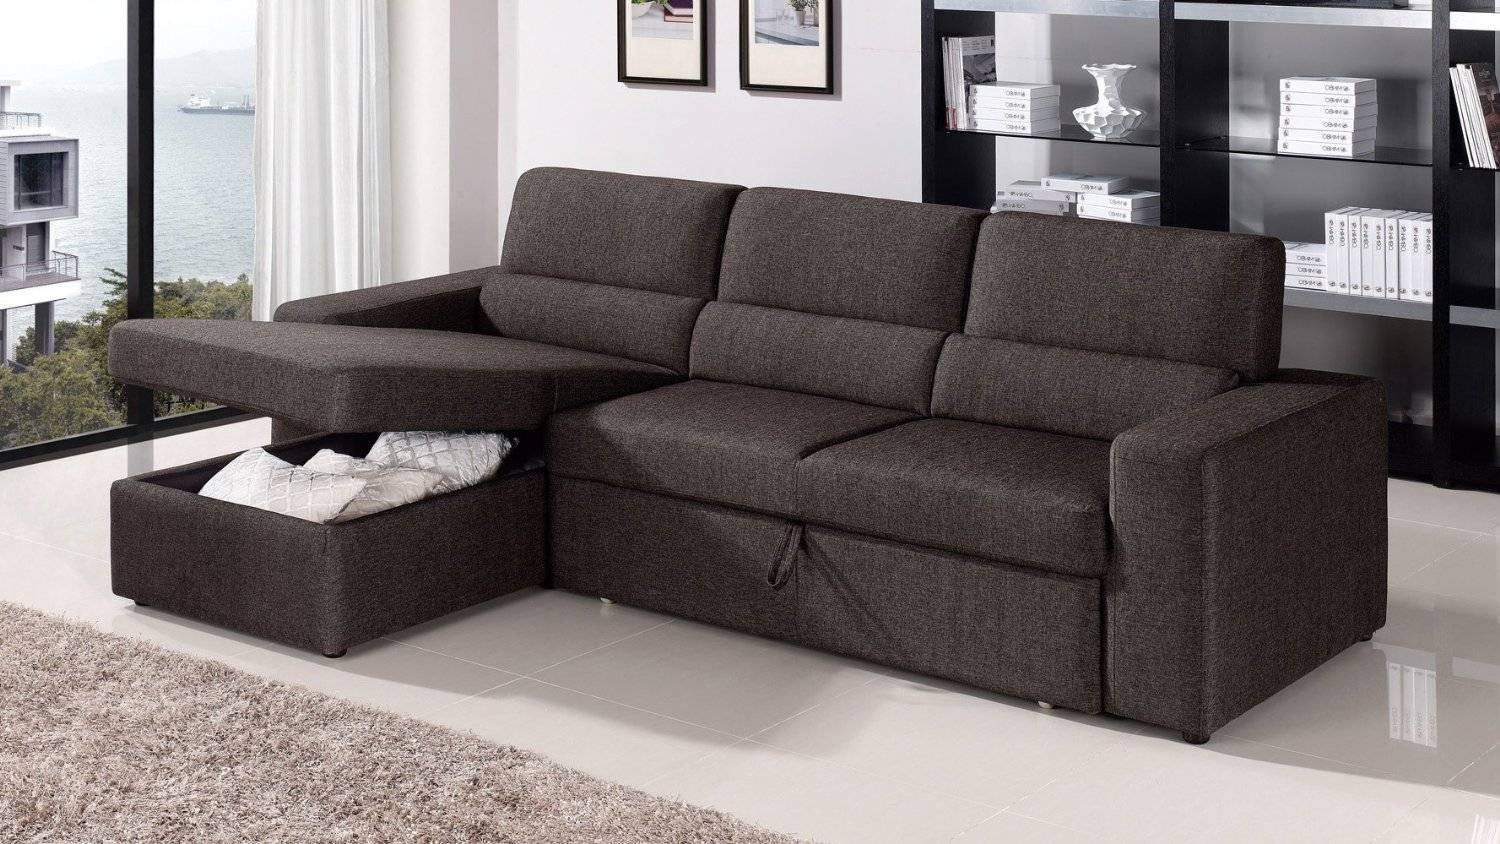 Attractive Sleeper Sectional Sofa Alluring Home Design Ideas With with Sleeper Sectional Sofa Ikea (Image 4 of 25)